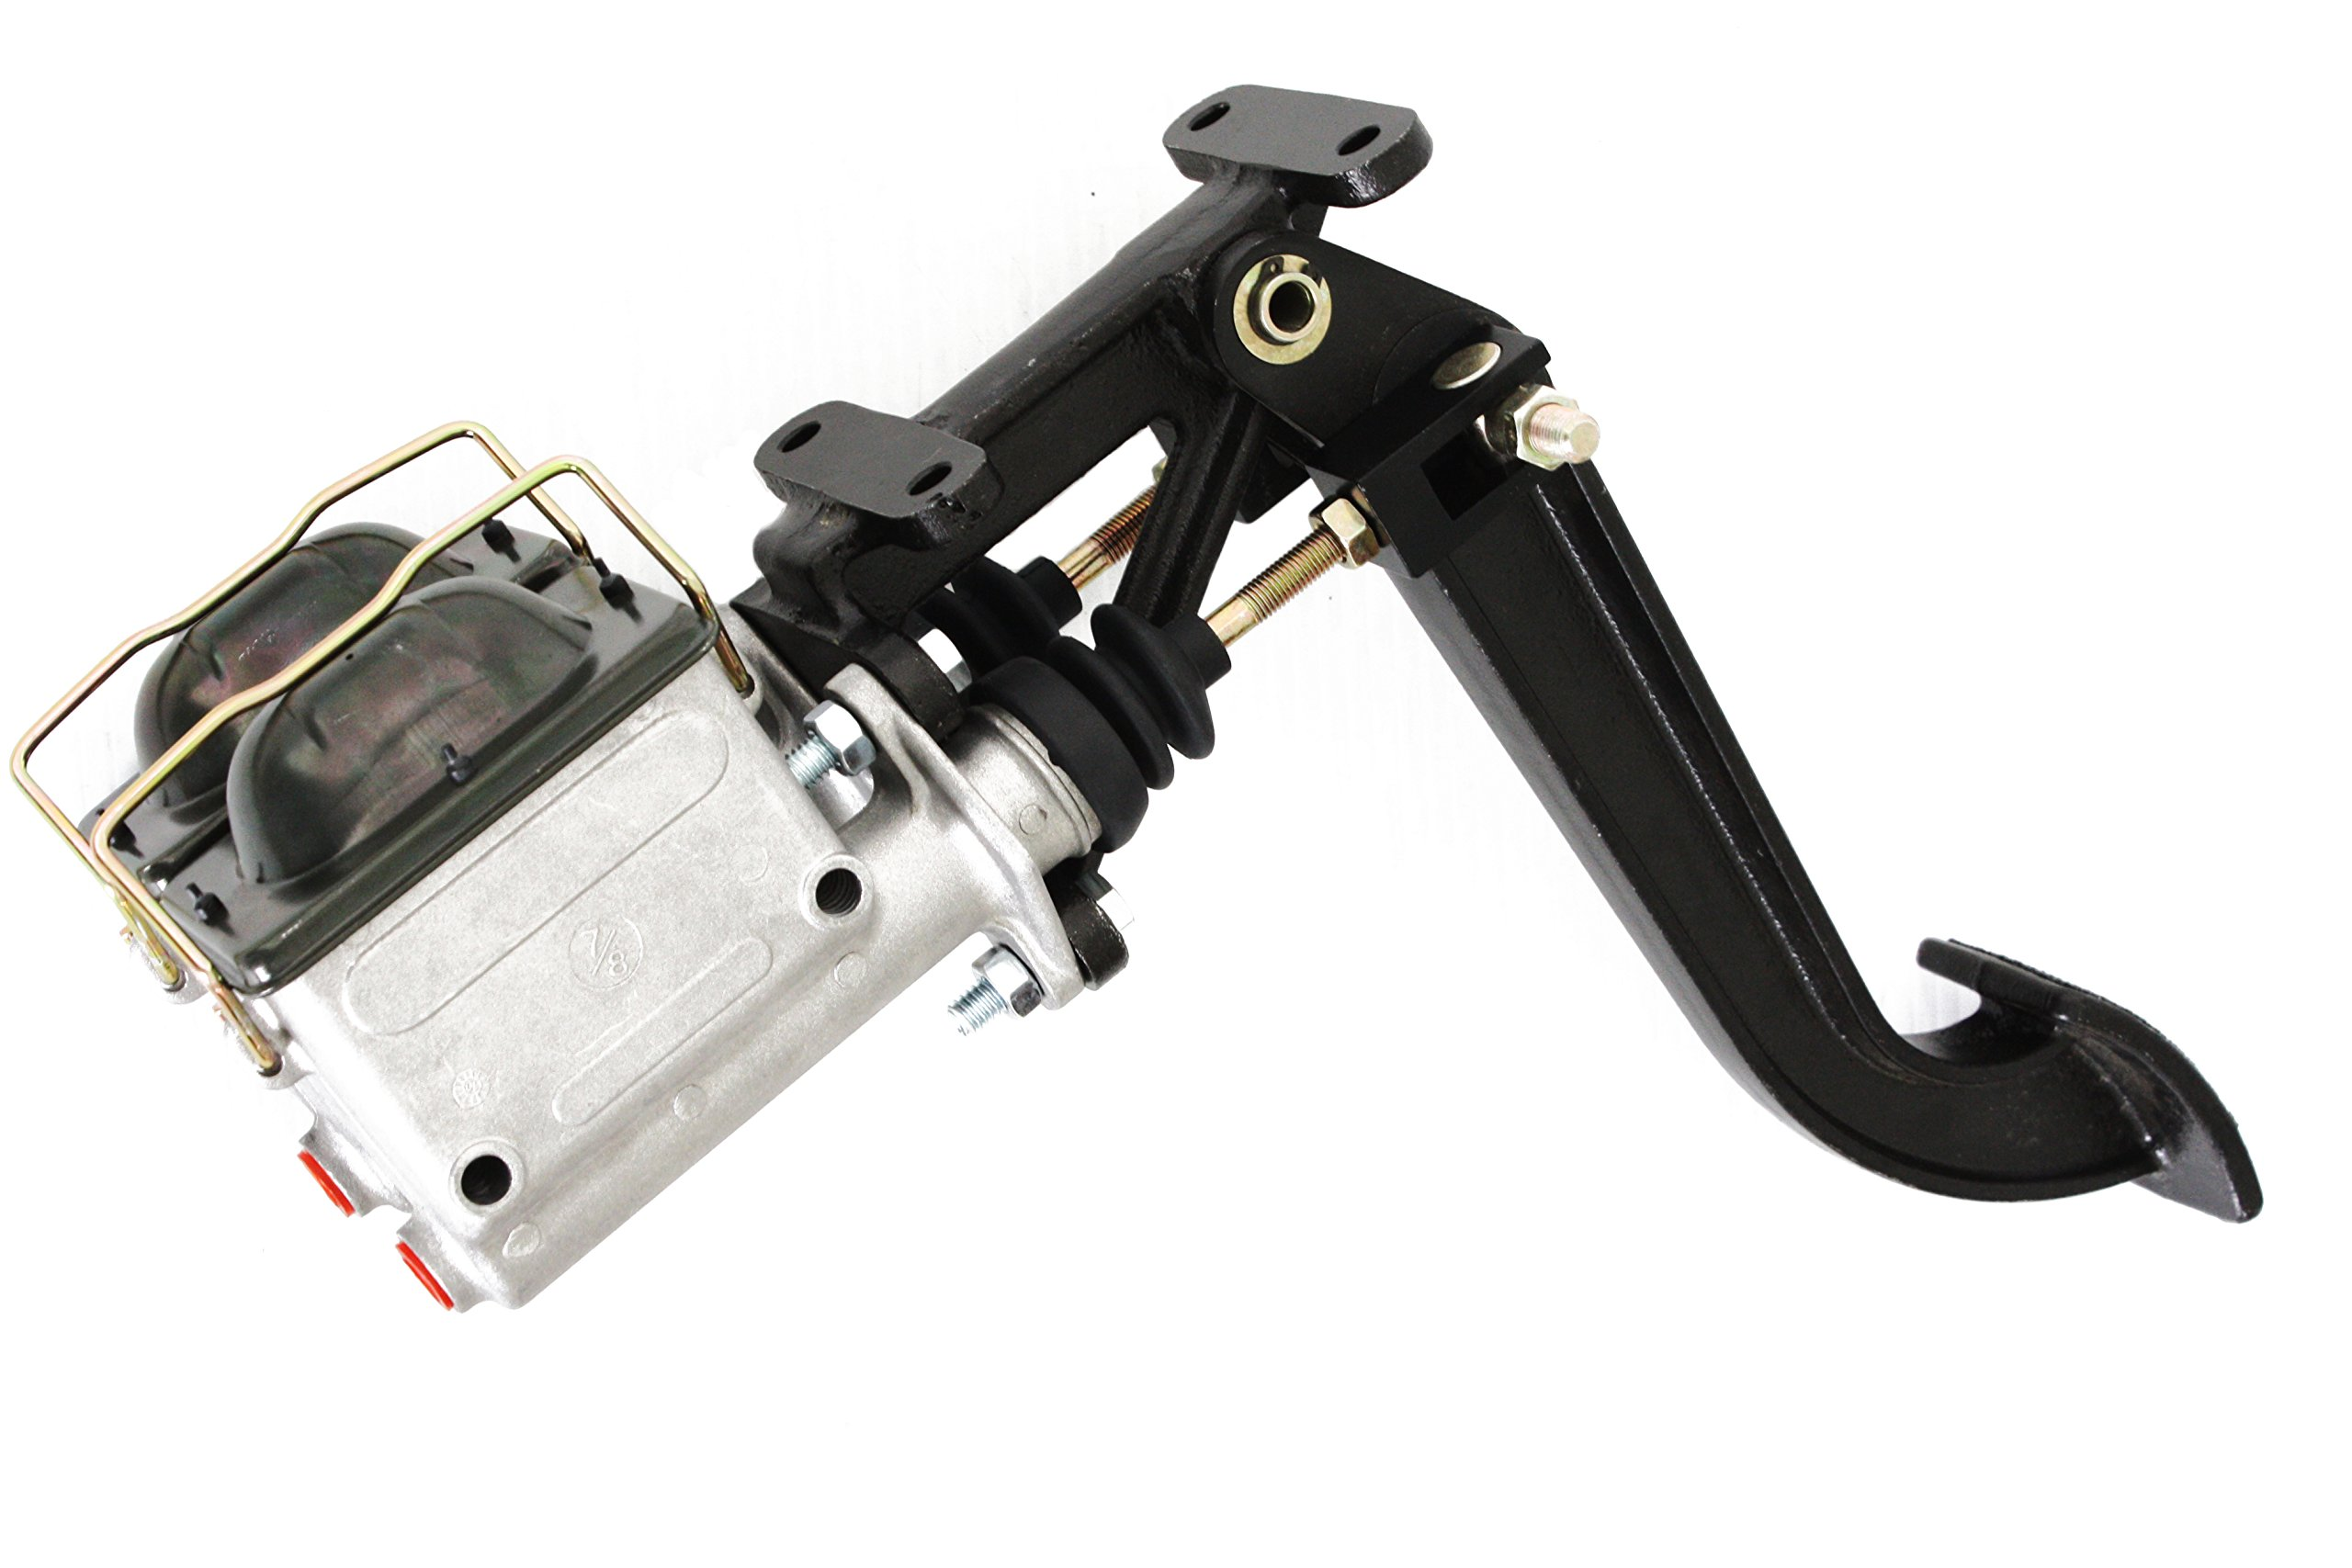 Universal Aluminum Brake Pedal Swing Mount & Dual 7/8'' Master Cylinders by CCR